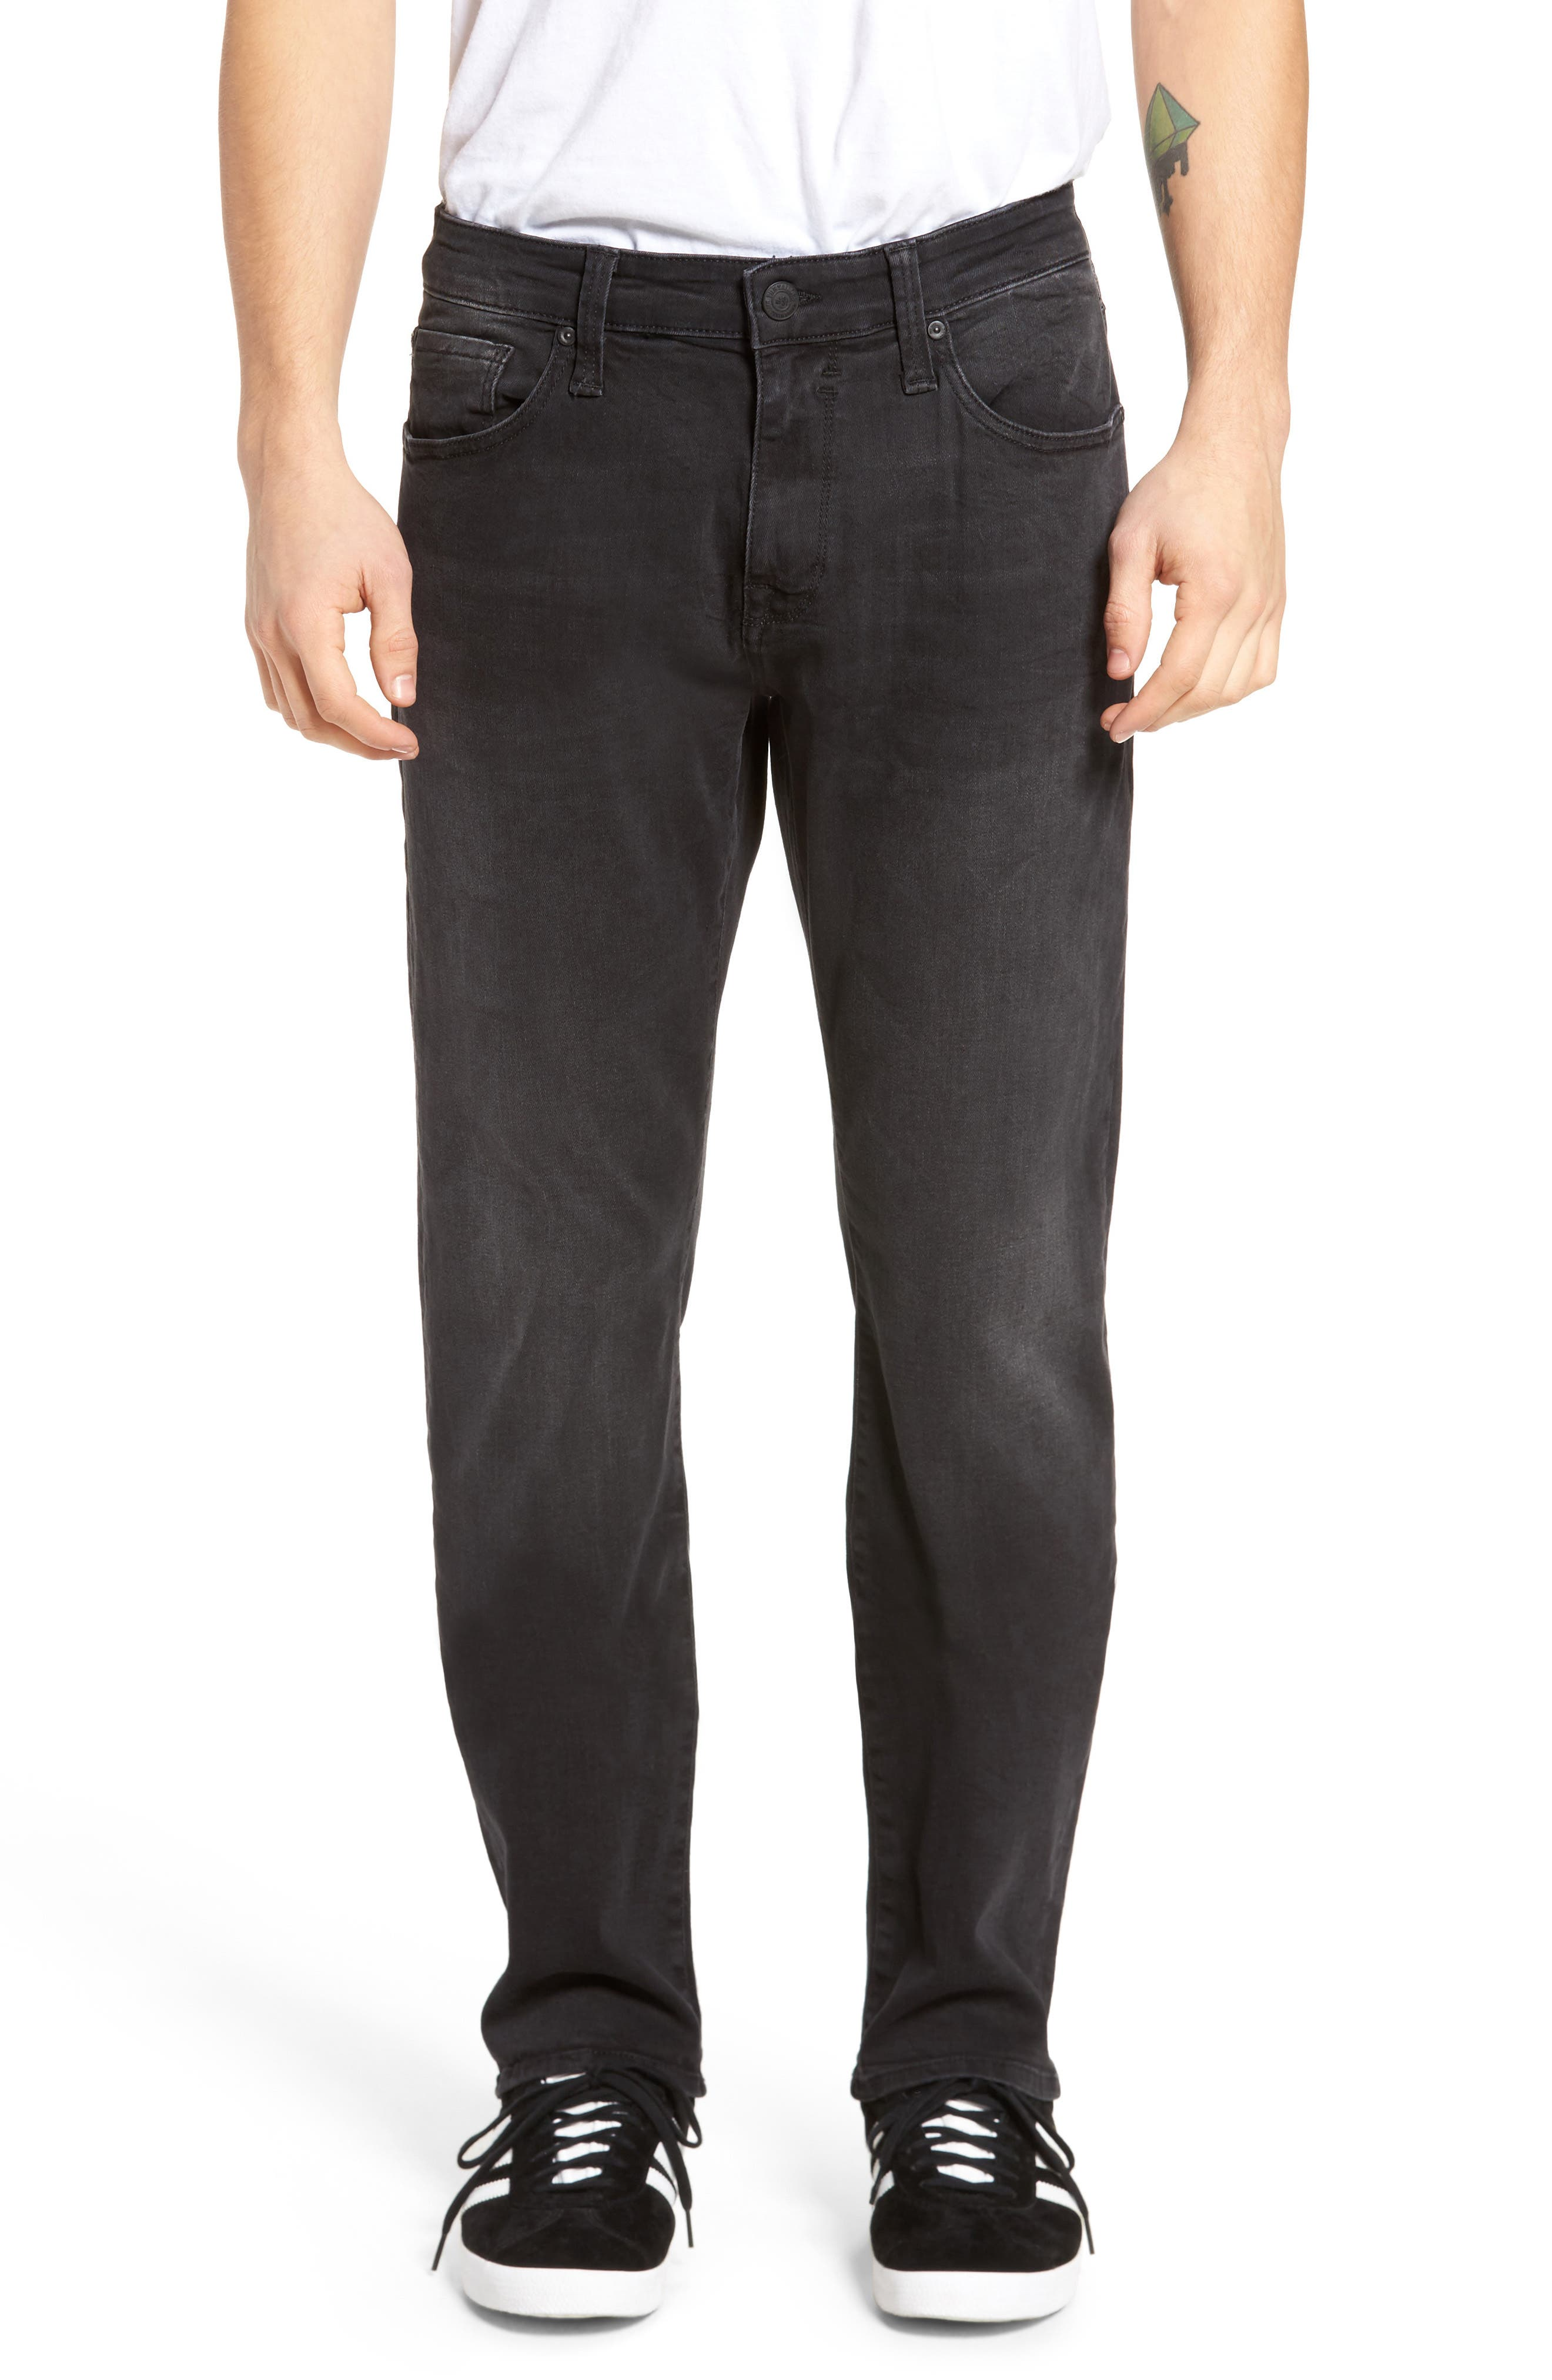 Zach Straight Fit Jeans,                             Main thumbnail 1, color,                             Smoke Chelsea